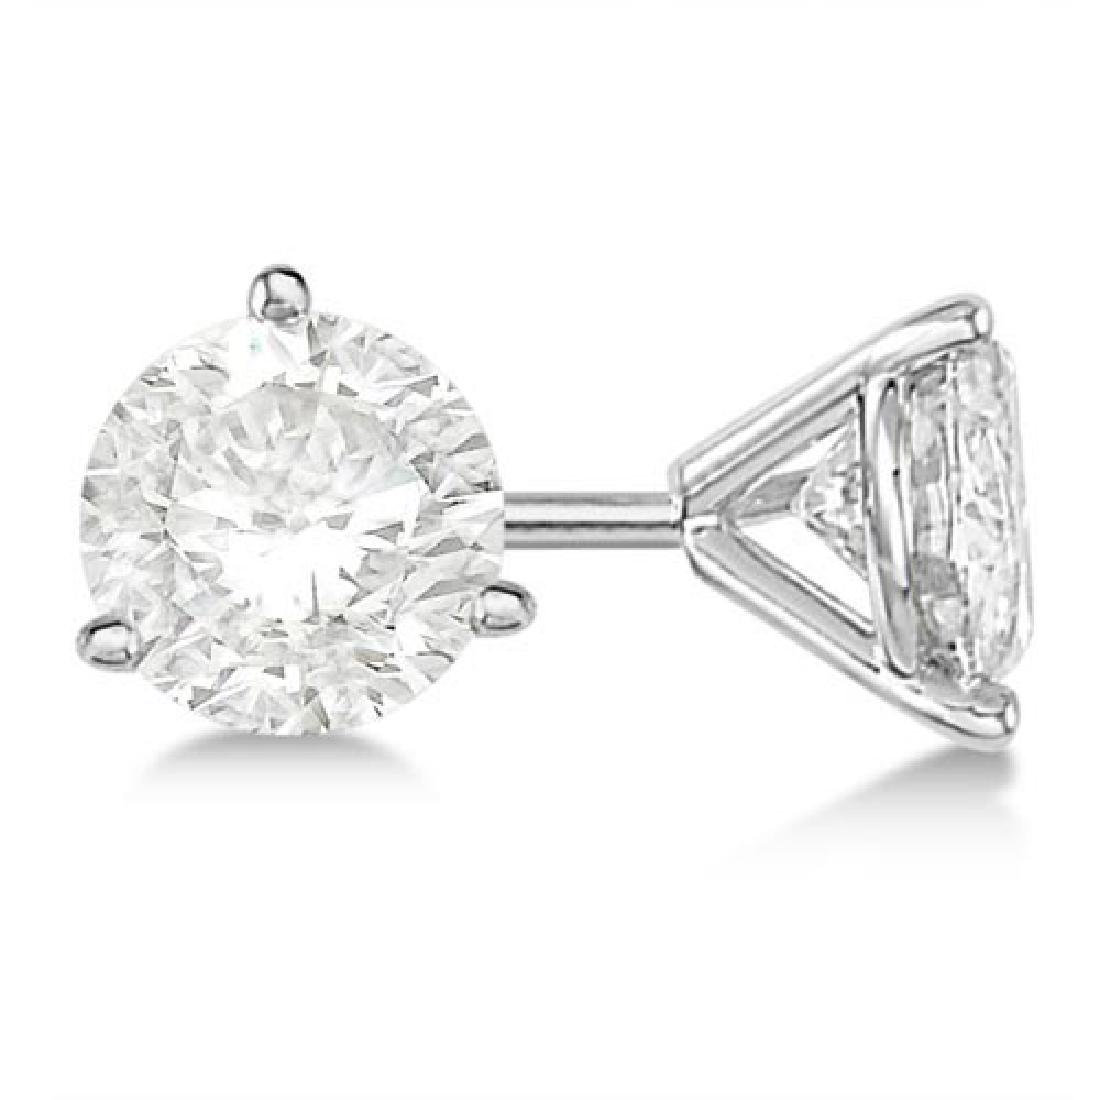 1.00ct. 3-Prong Martini Diamond Stud Earrings 14kt Whit